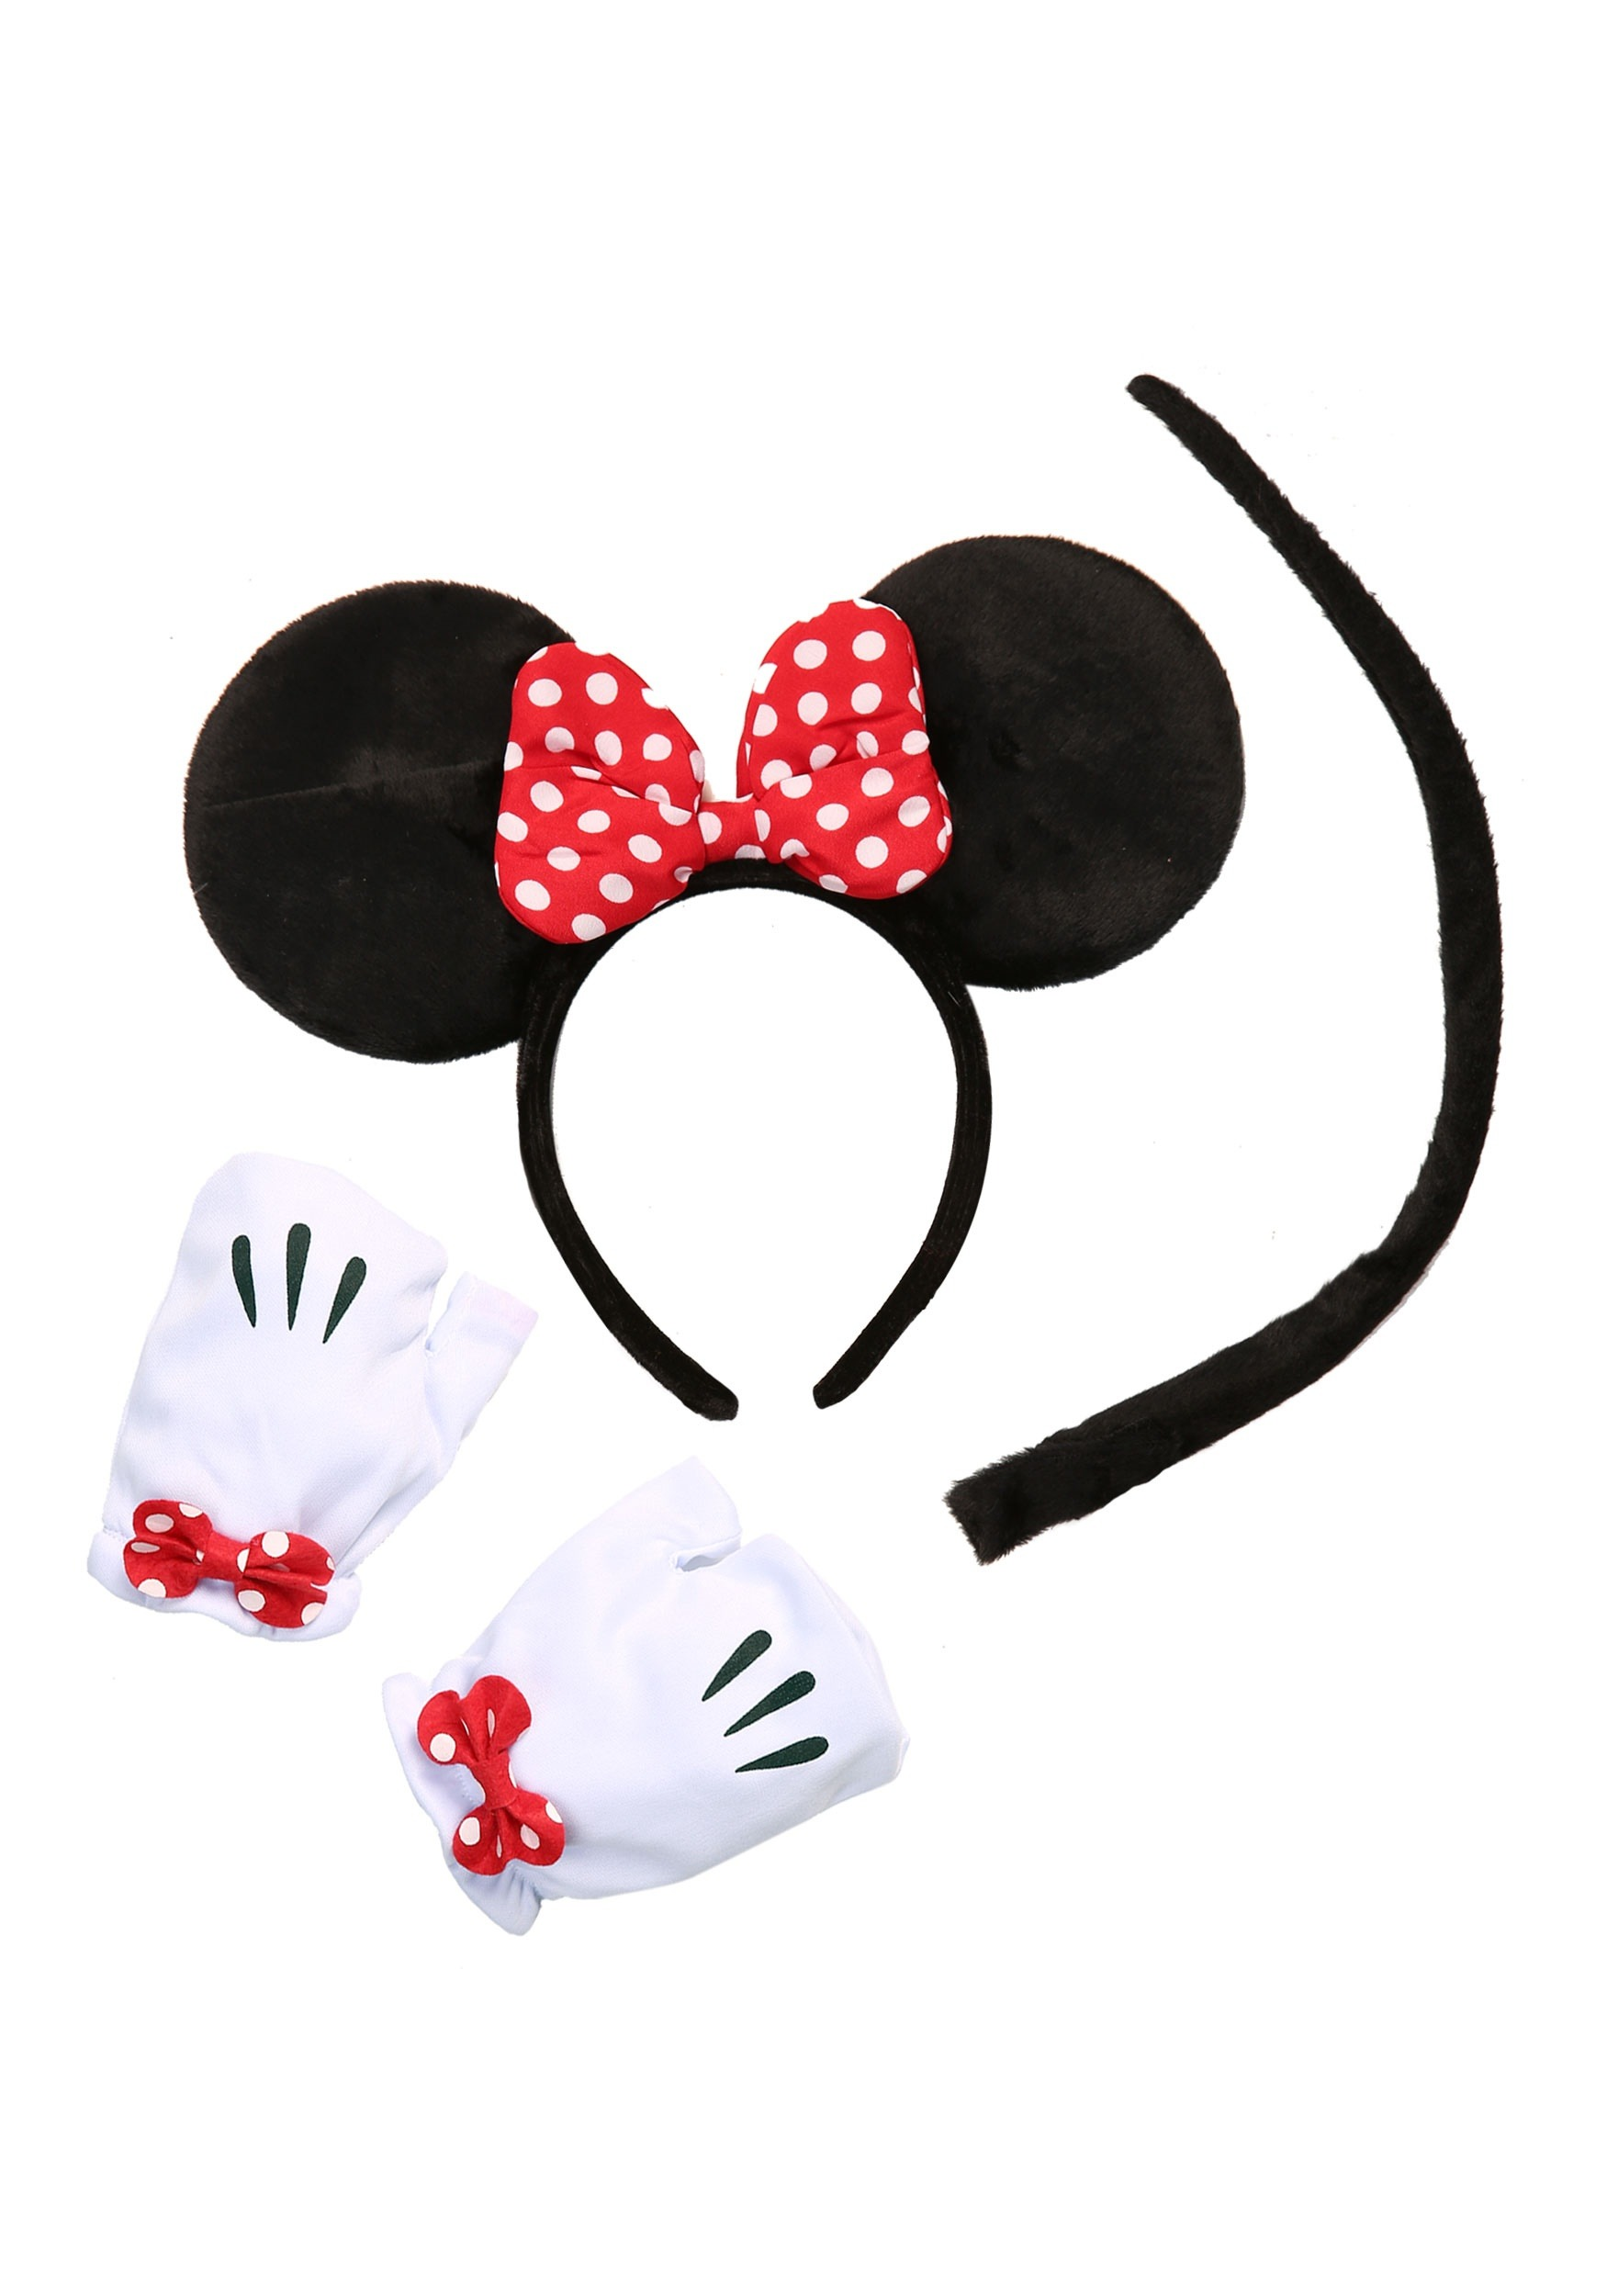 Gallery For gt Minnie Mouse Outfit Ideas